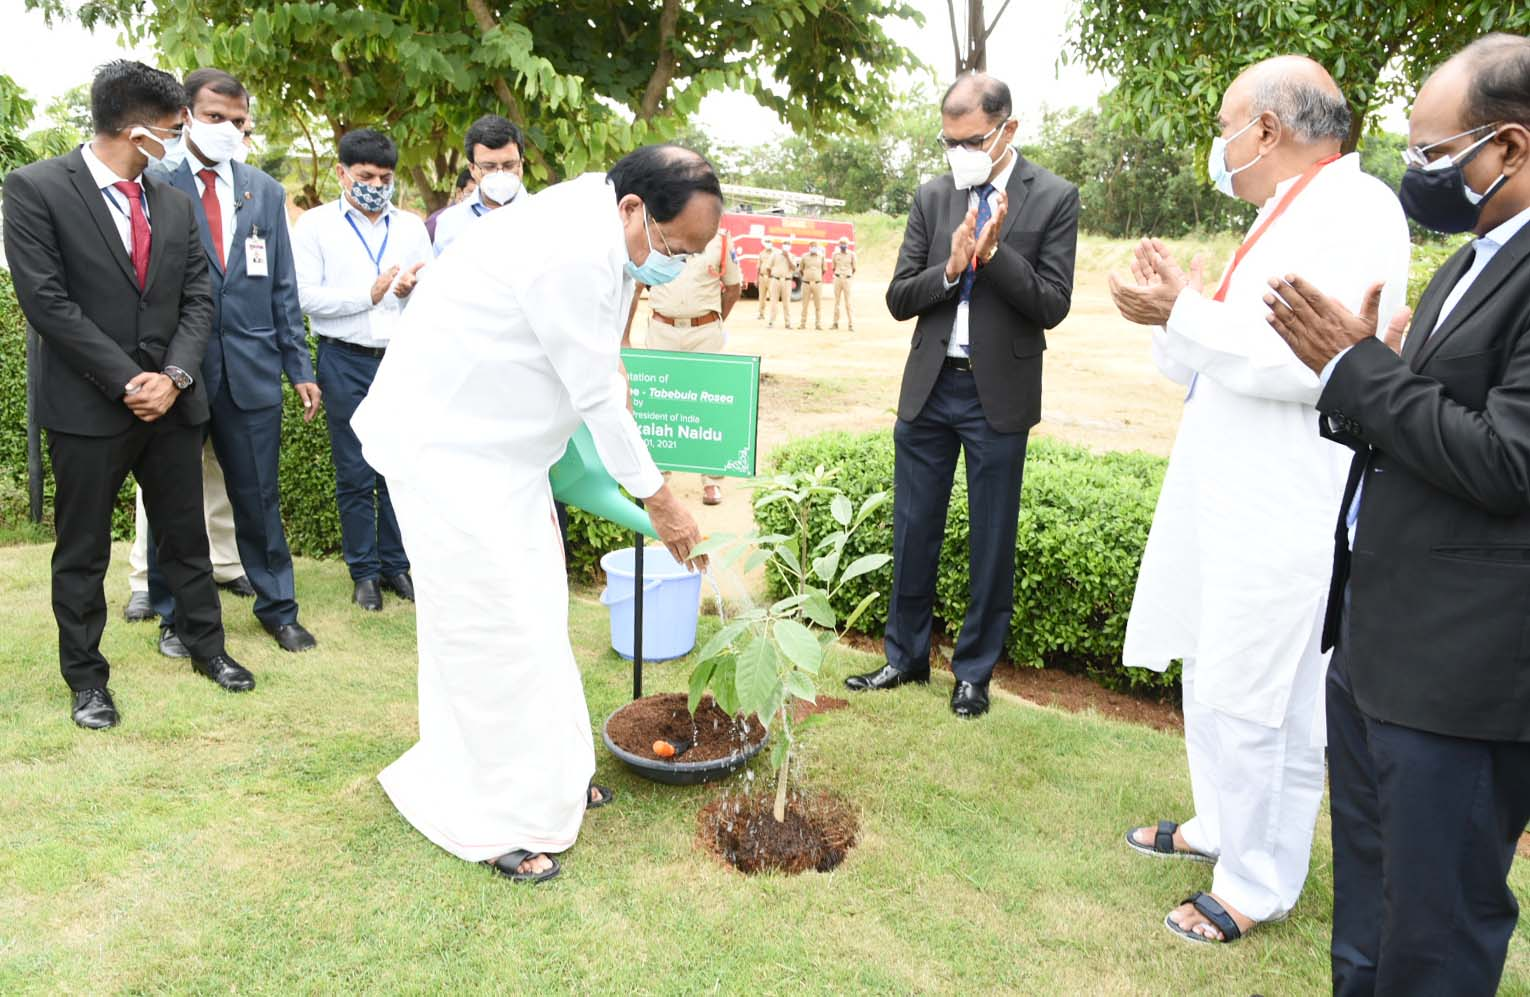 The Vice President, Shri M. Venkaiah Naidu  planting a sapling at the campus of GMR Varalakshmi Foundation's Centre for Empowerment and Livelihoods in Hyderabad on August 1, 2021